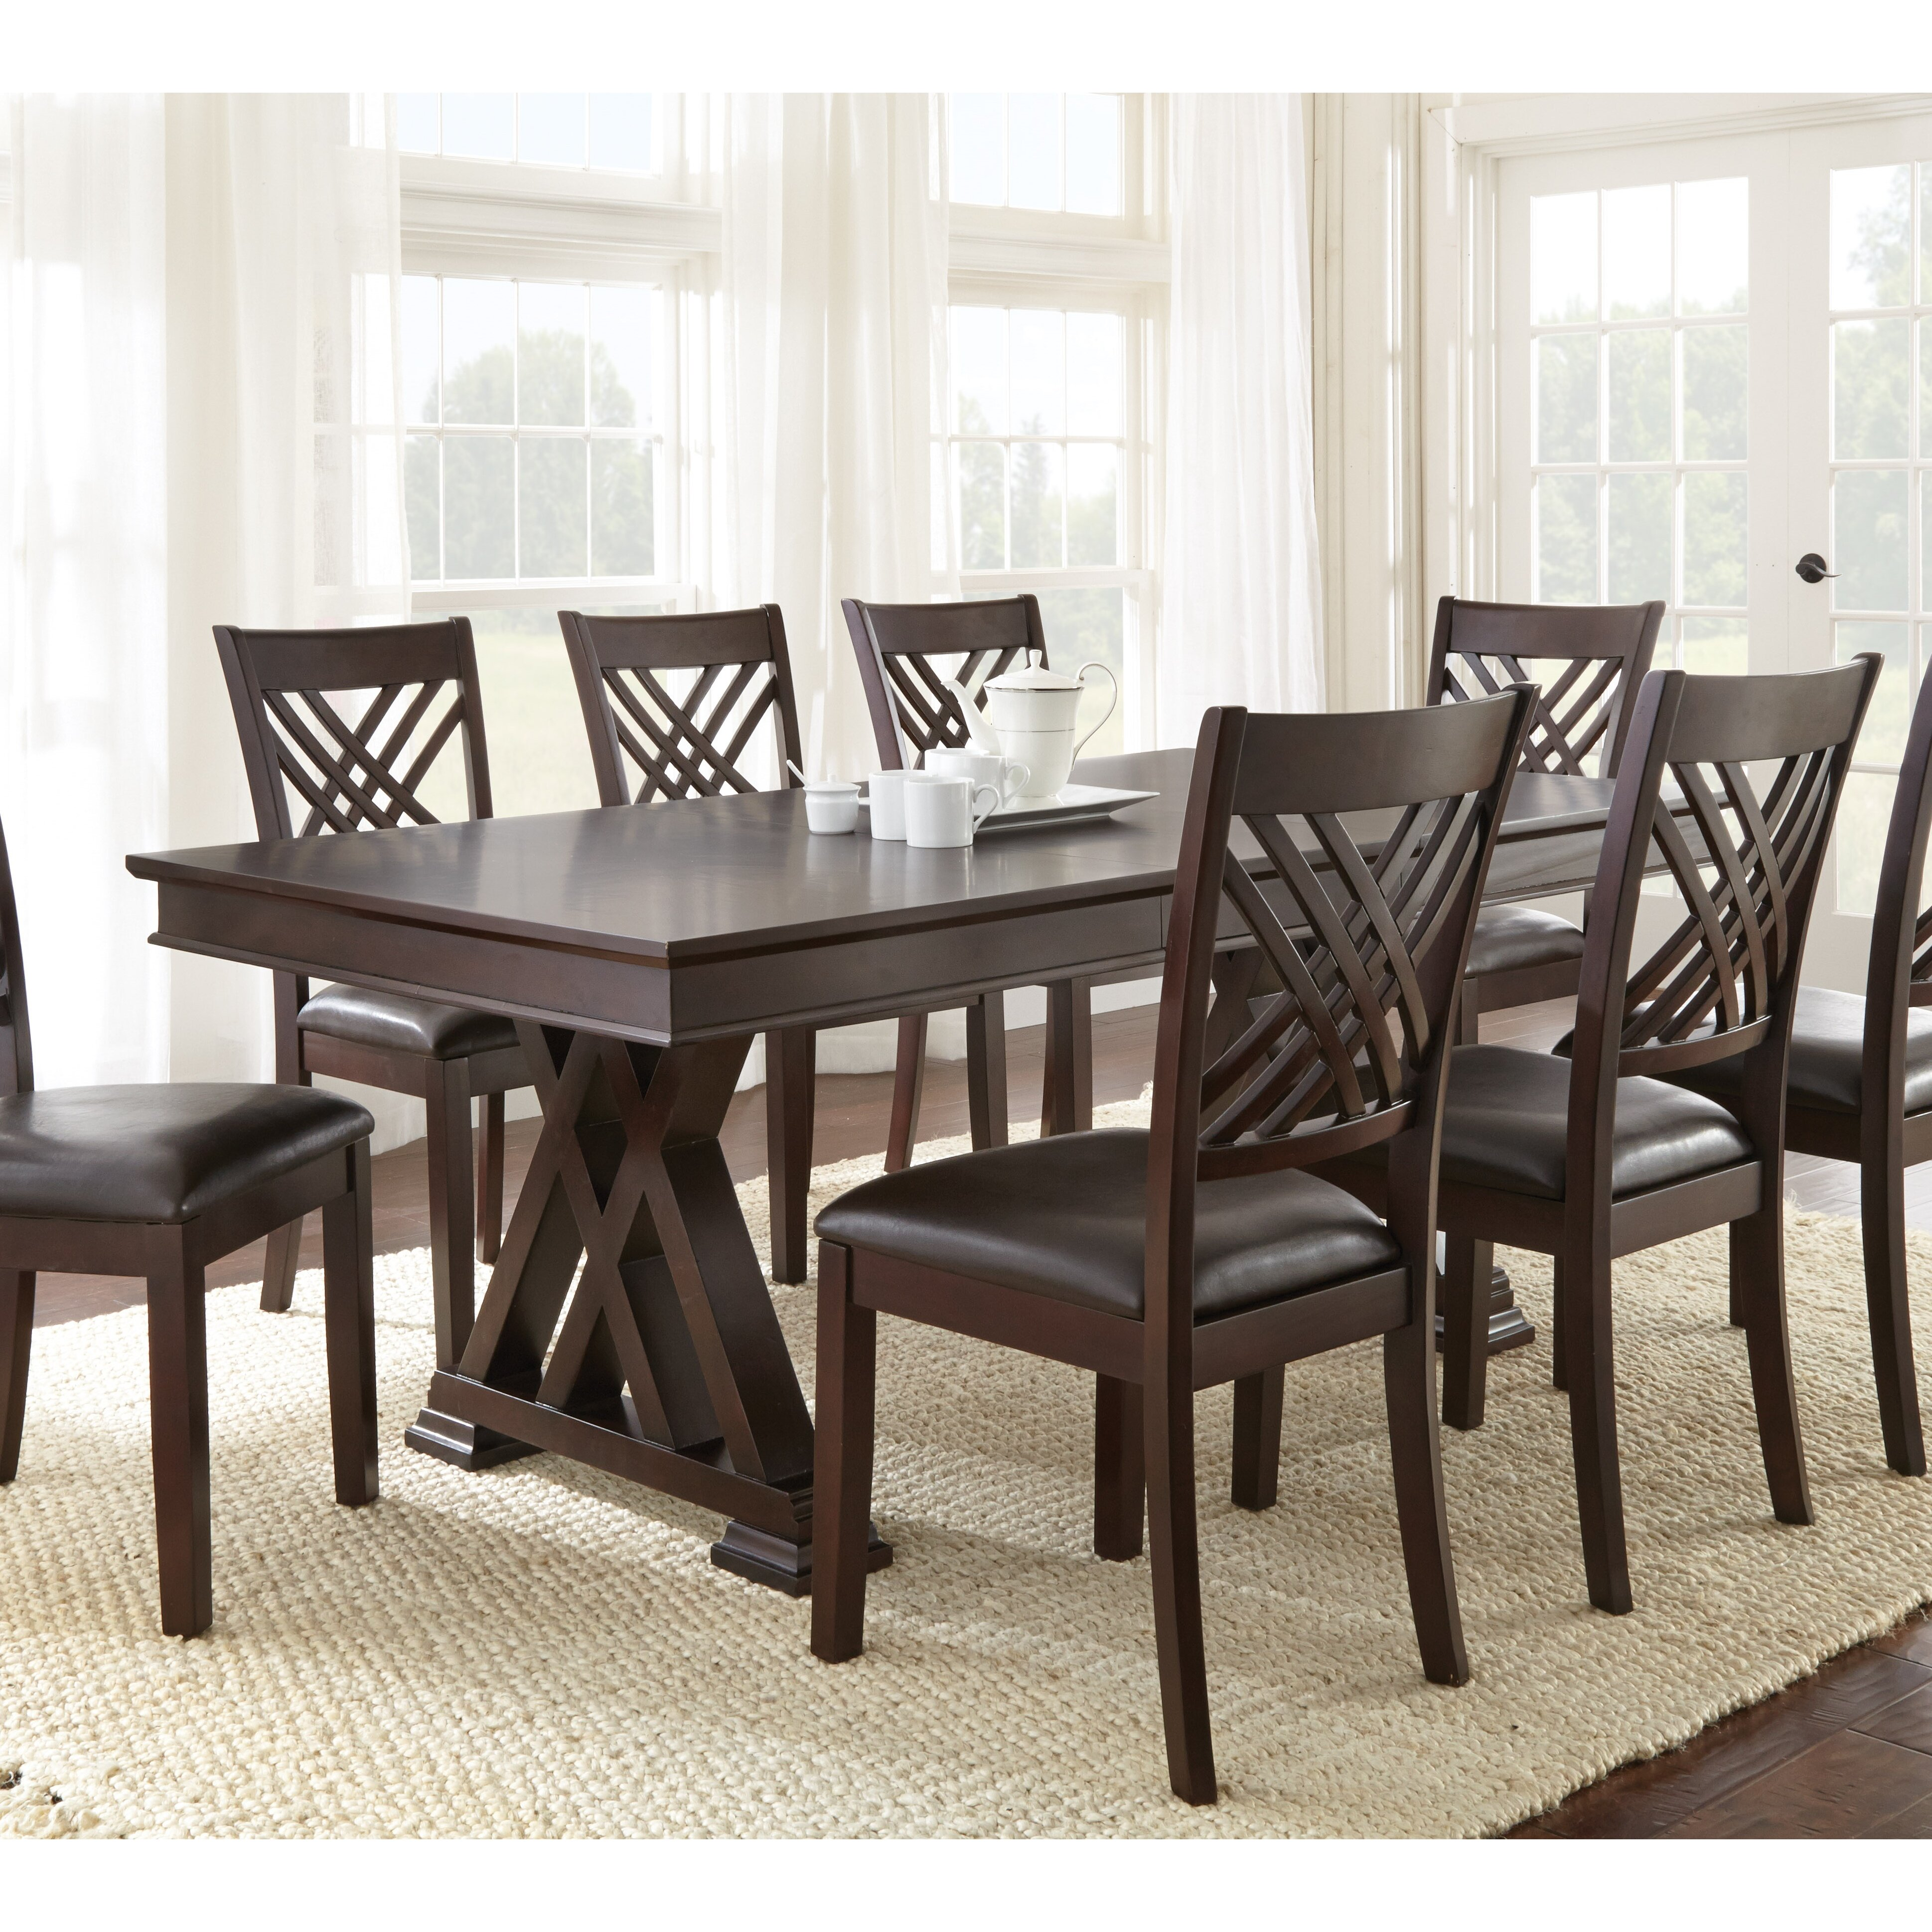 Large Oak Dining Table Seats 10 Double Pedestal Kitchen Dining Tables Youll Love Wayfair